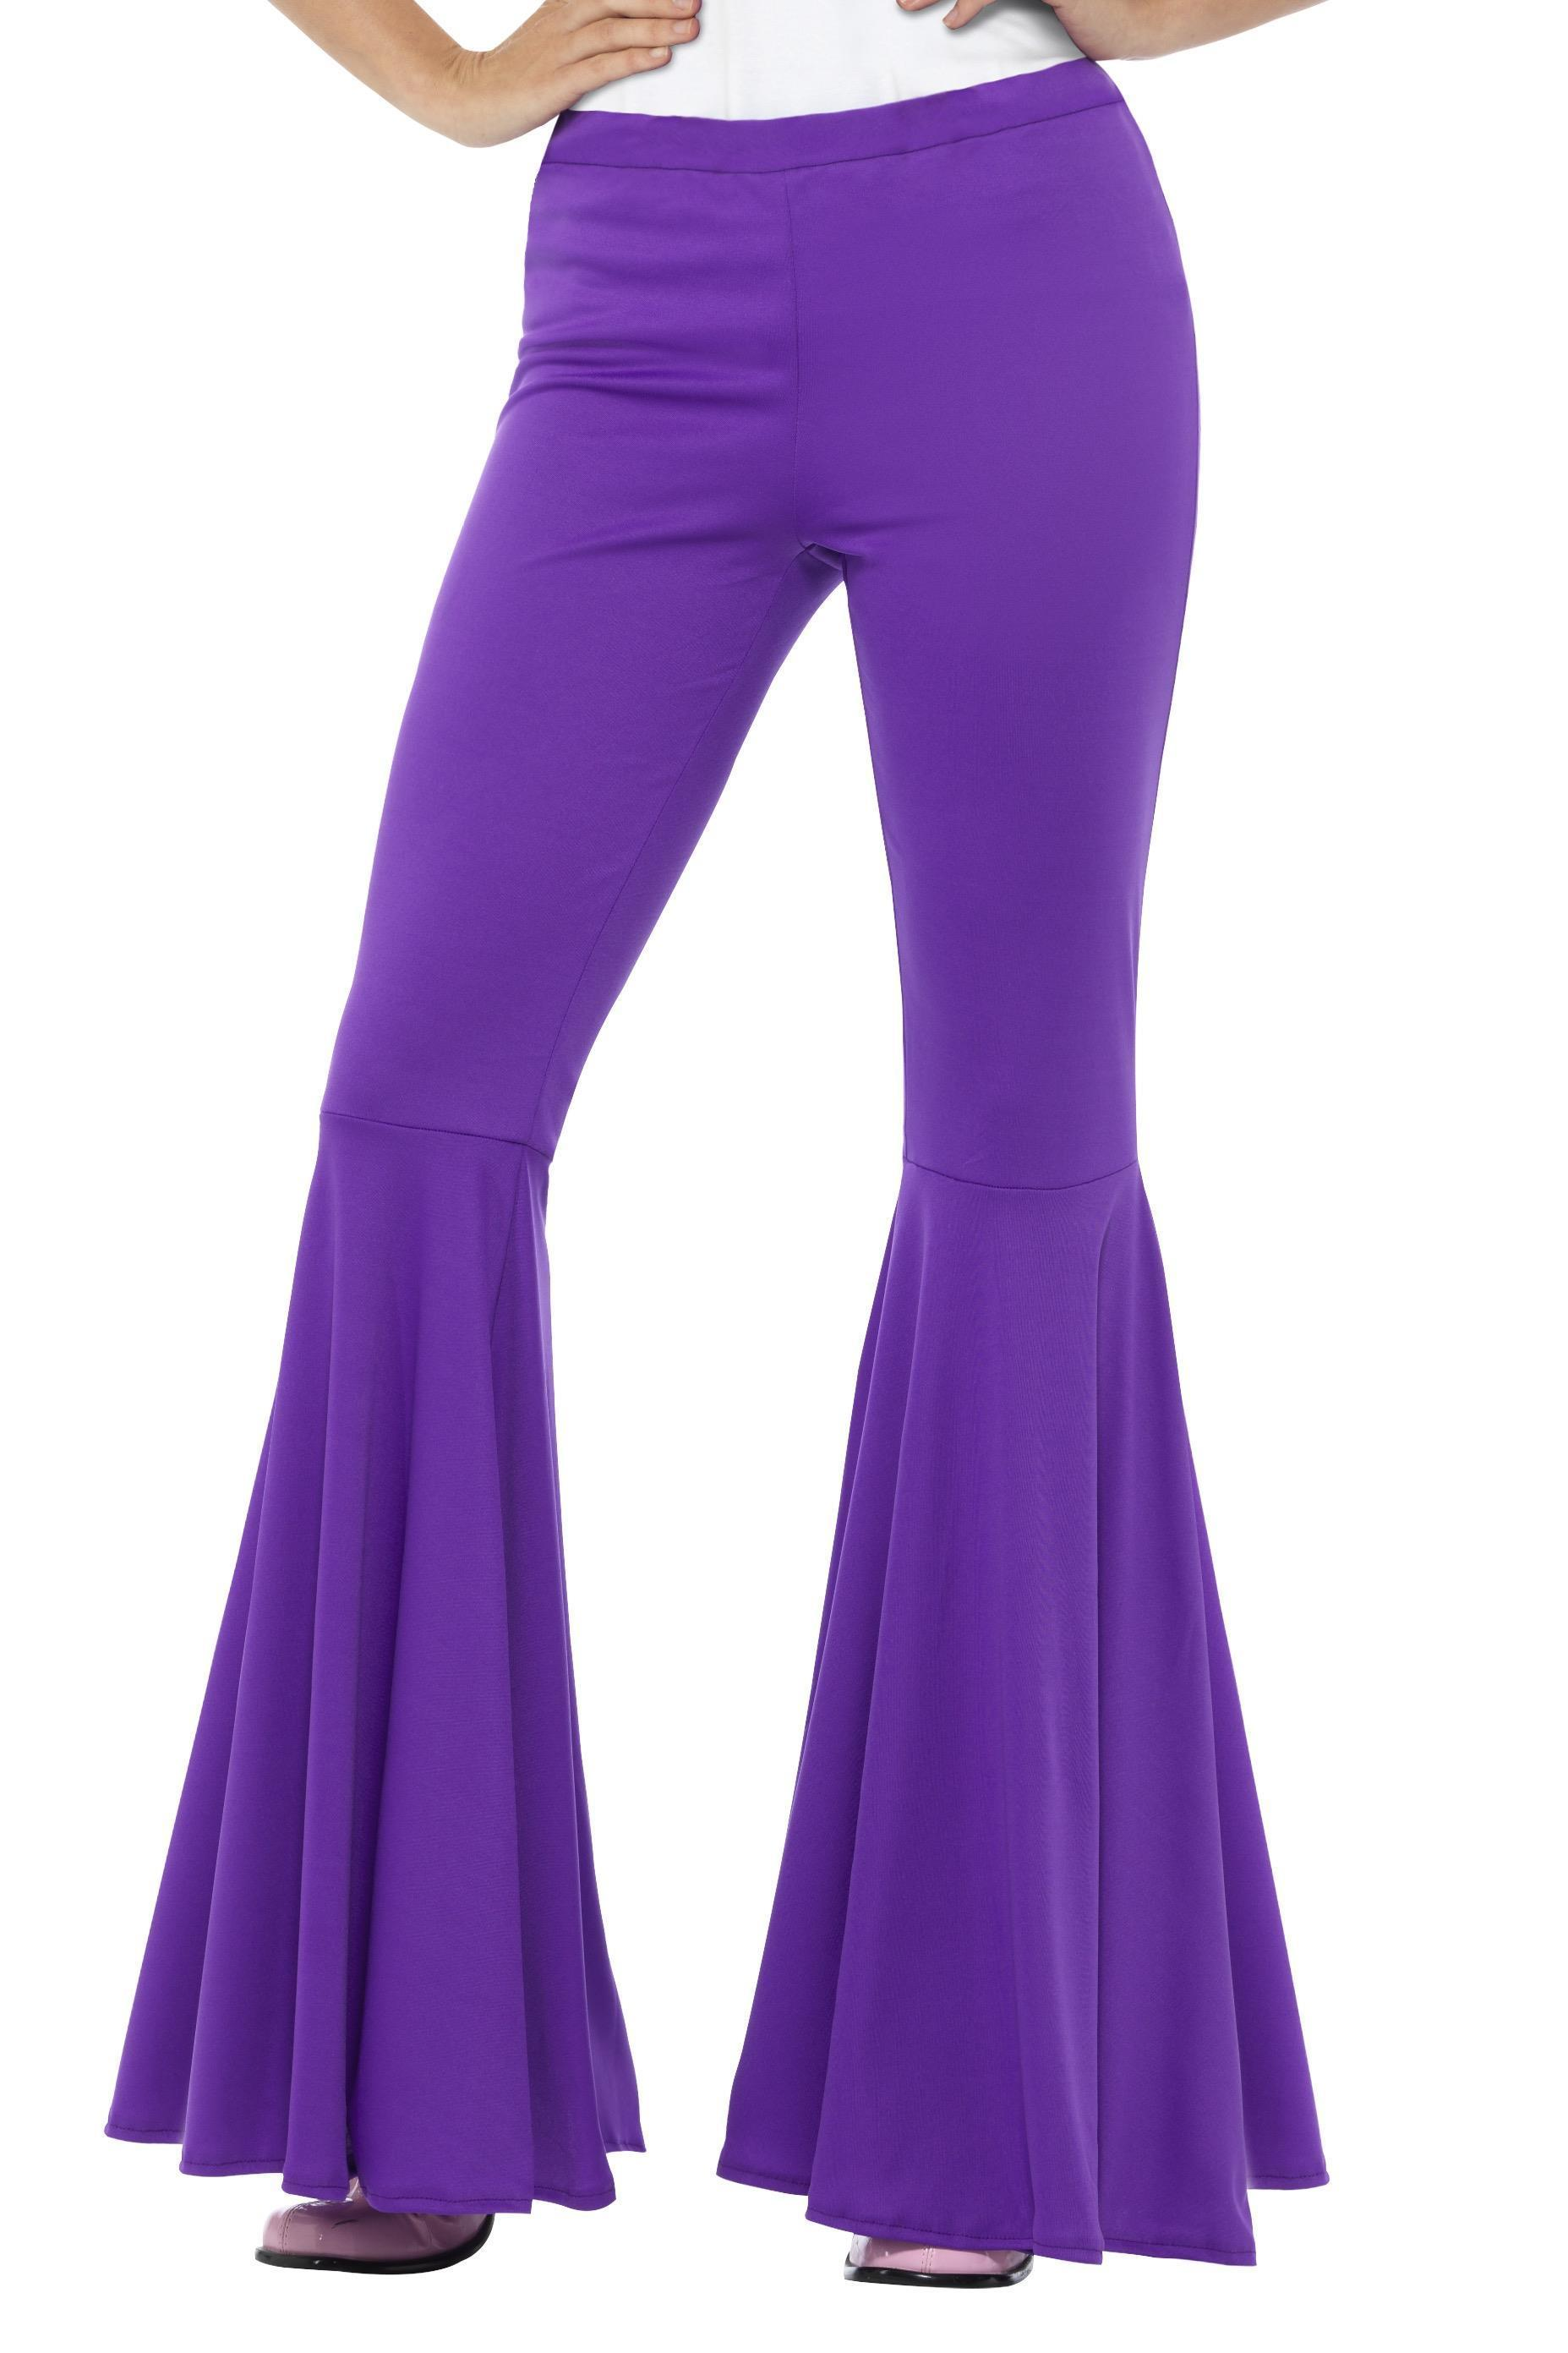 Ladies Flared Trousers Purple